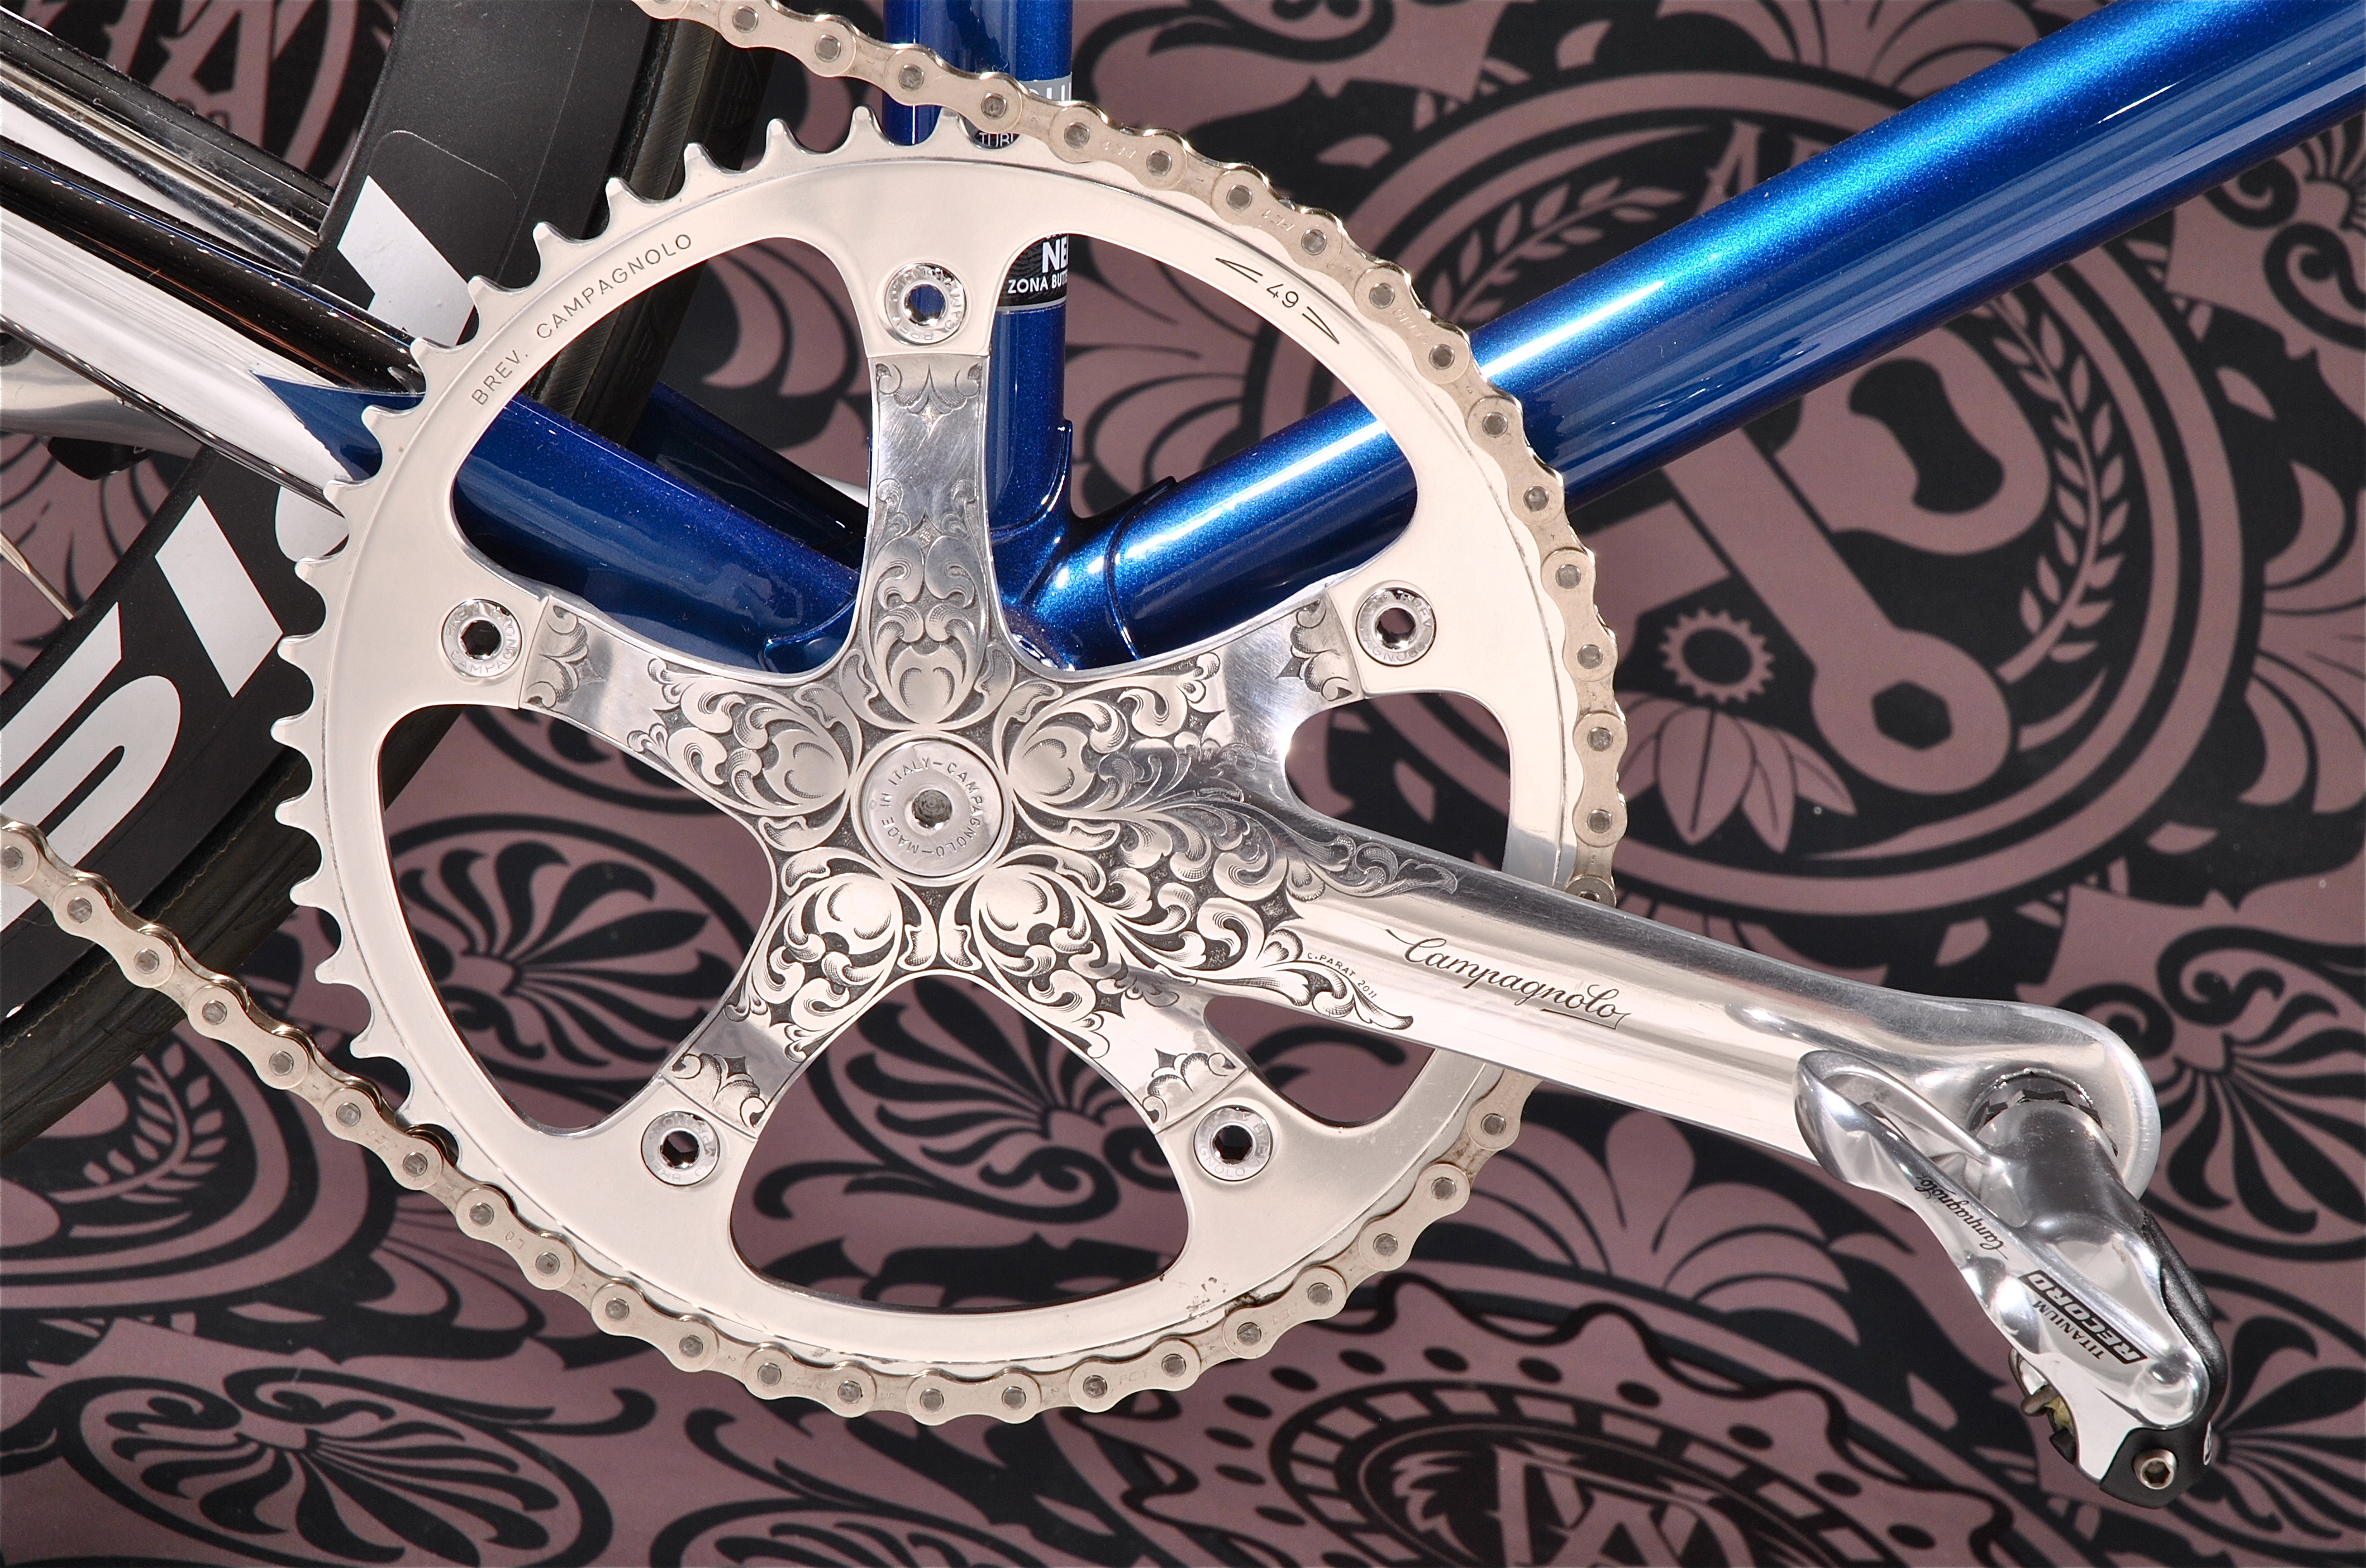 Engraved groupset by ADV